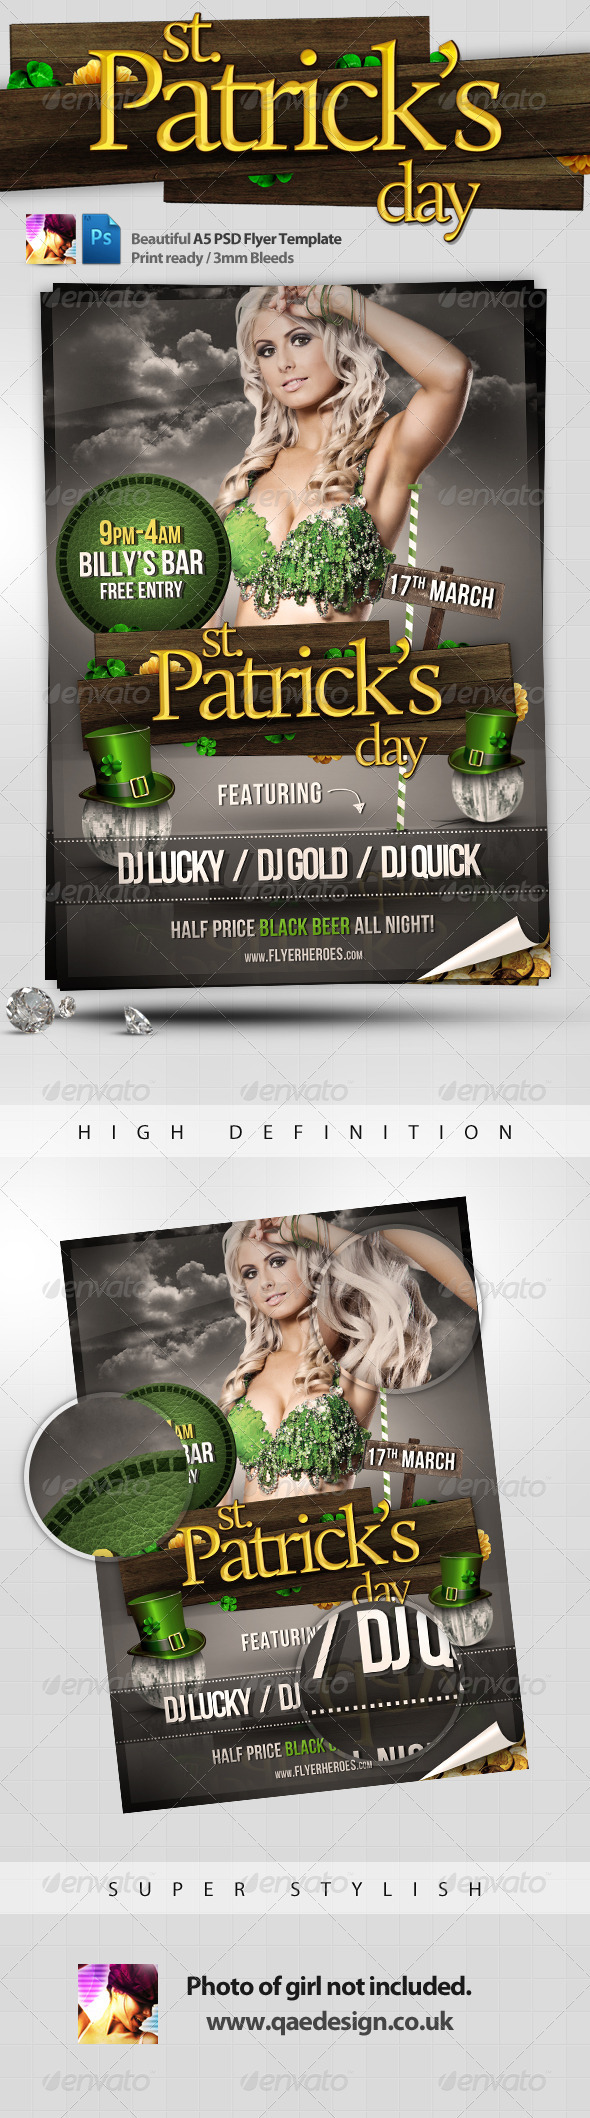 St. Patrick's Day Flyer Template - Holidays Events